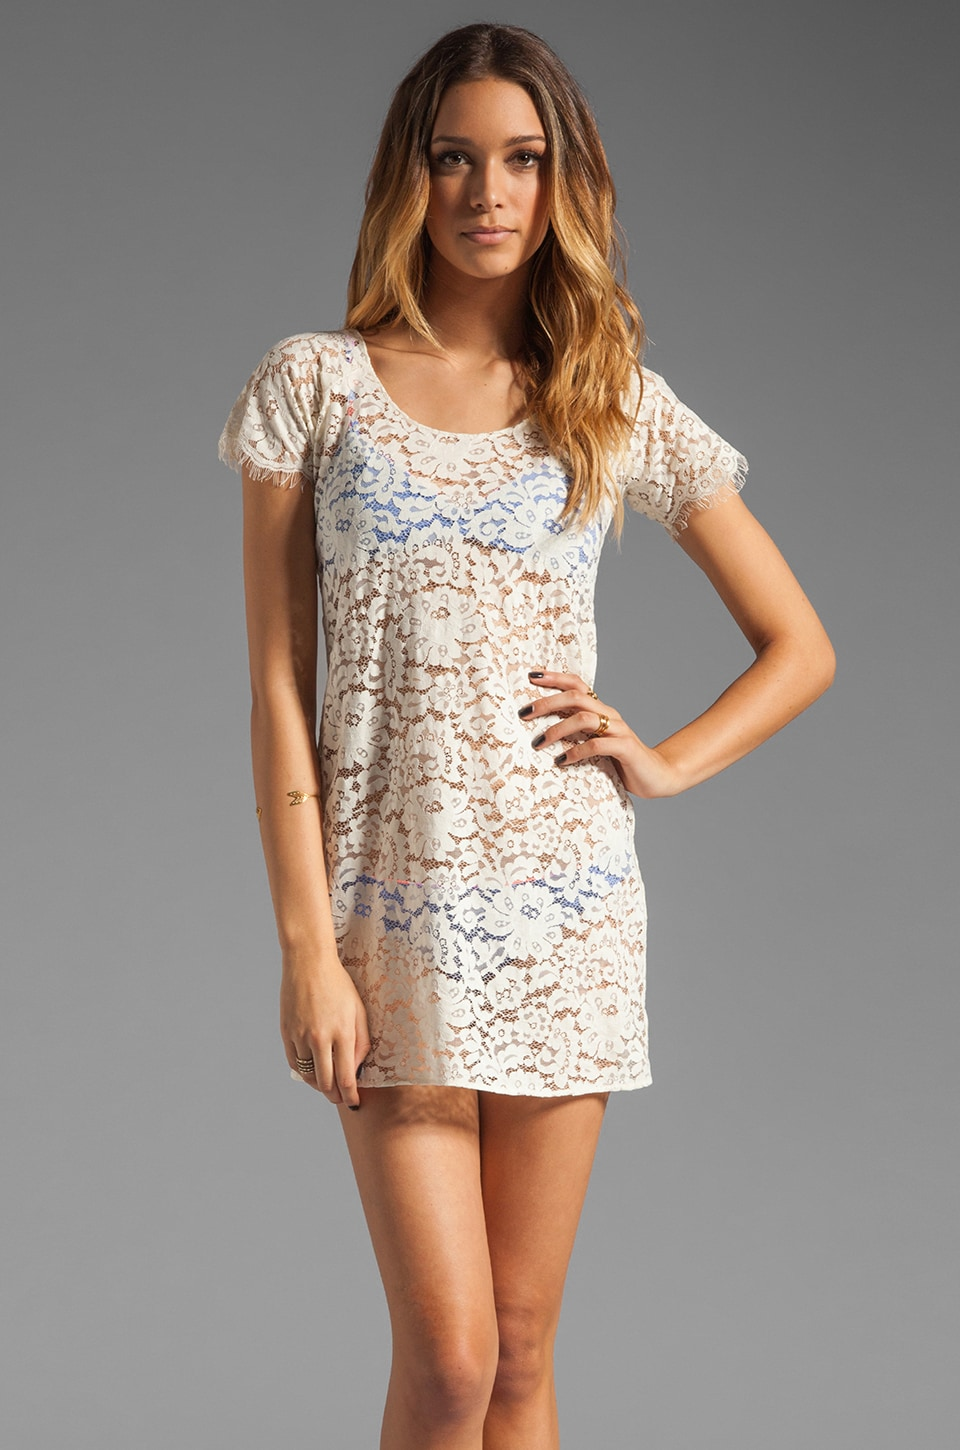 zinke Endless Summer Lace Dress in Sugar